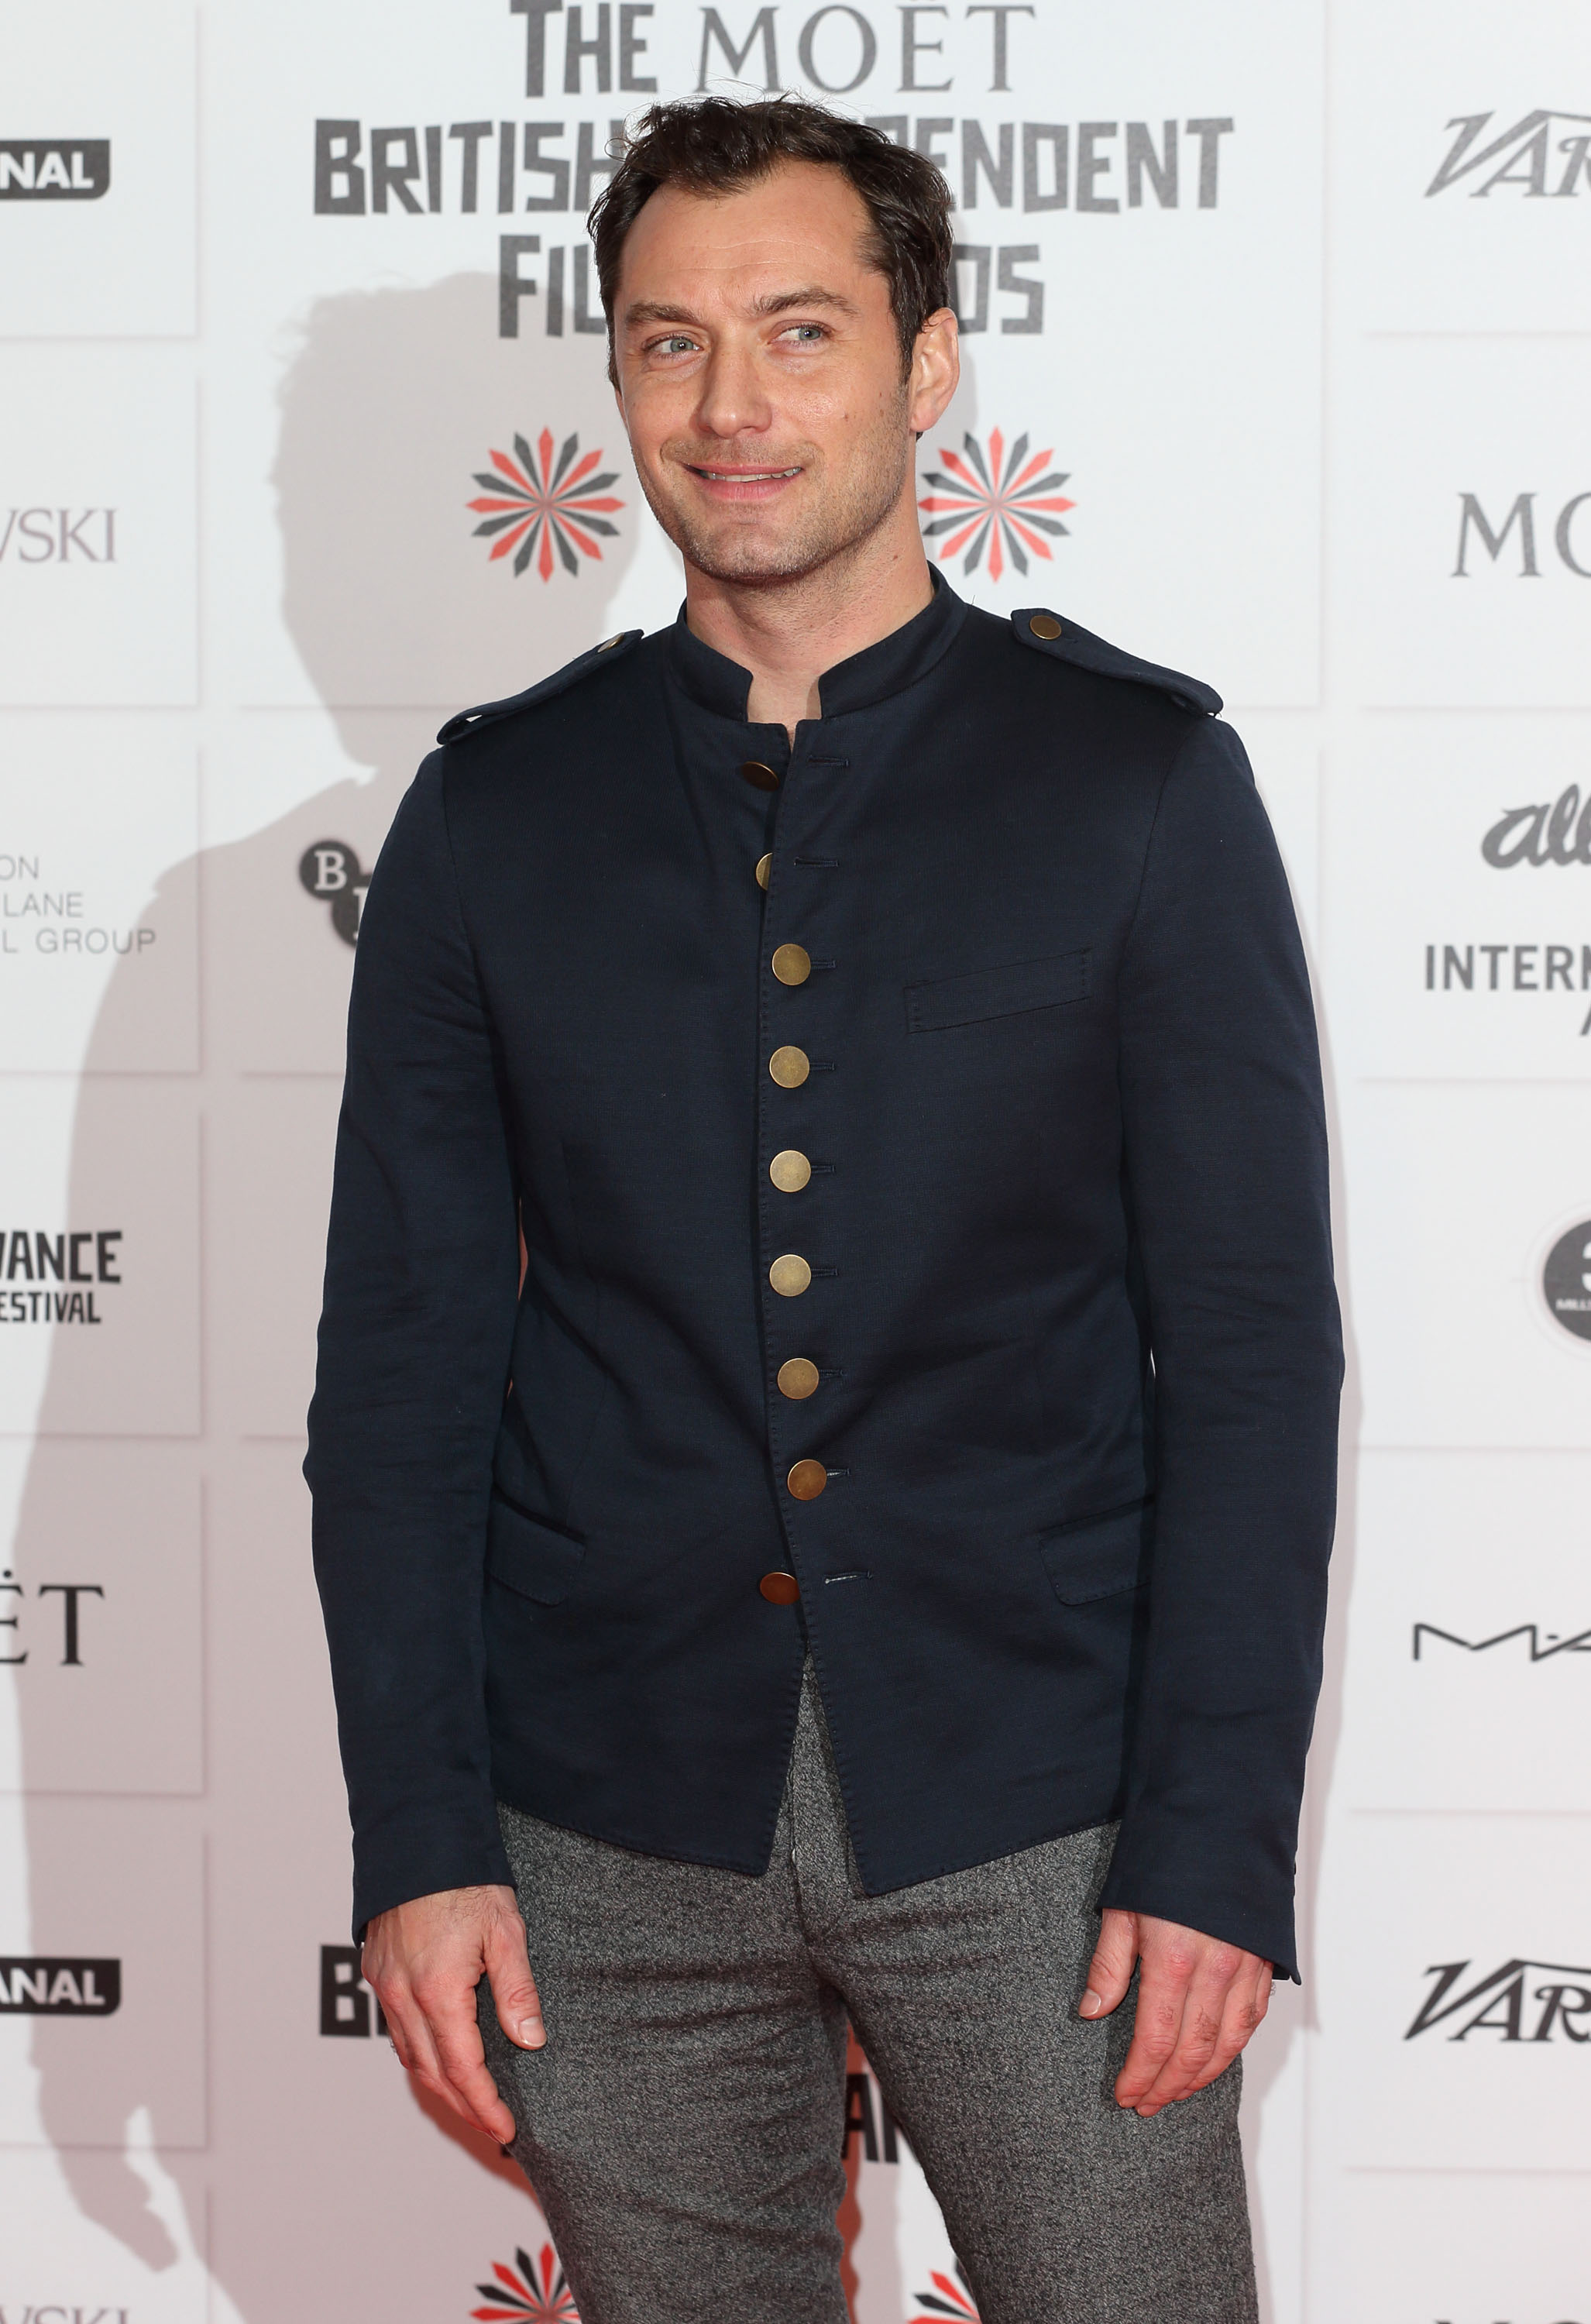 Jude Law went for a military-inspired look at the BIFAs.